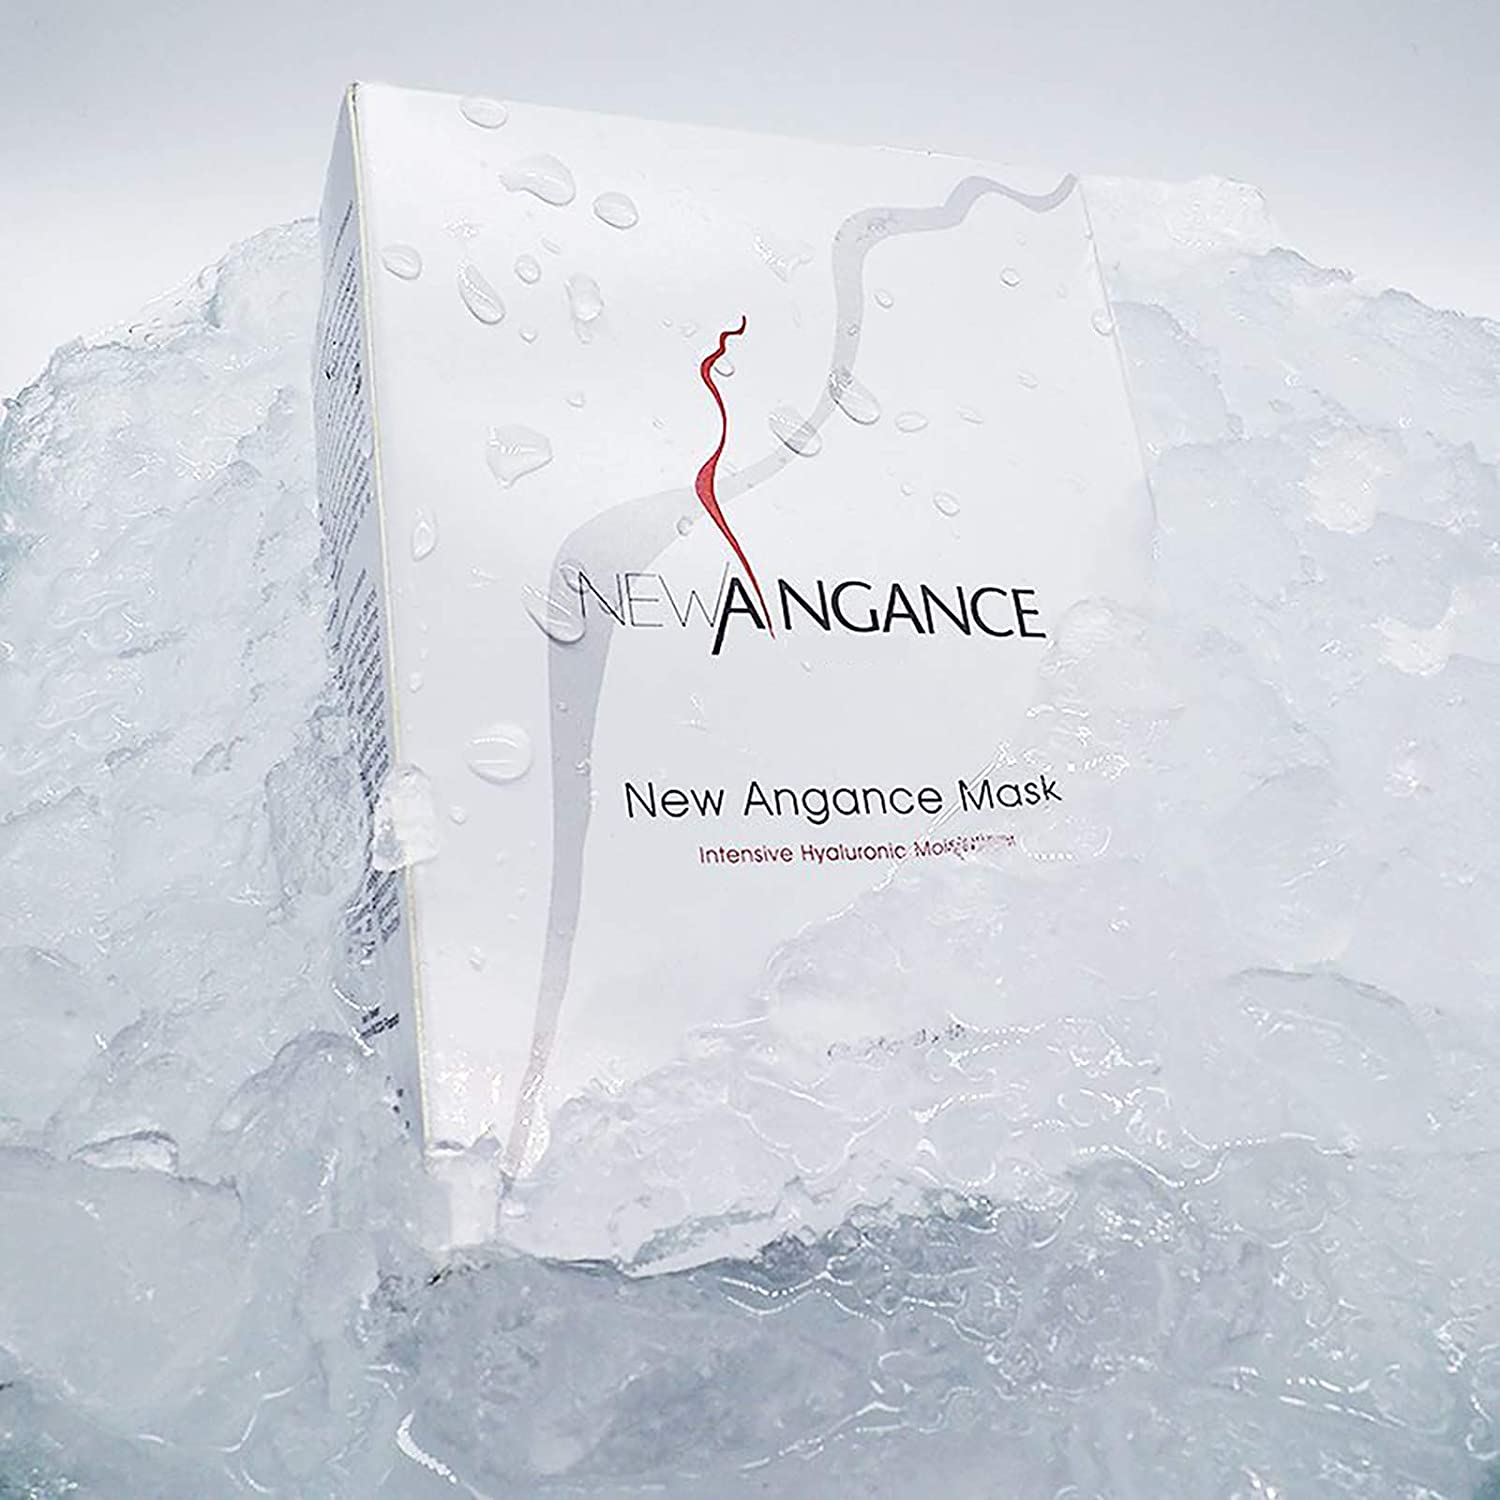 NEW ANGANCE Moisturizing and Hydrating Collagen Sheet Face Mask Skincare with Hyaluronic Acid for Dry, Oily and Sensitive Skin, Suitable for All Skin Types, 10 Pack